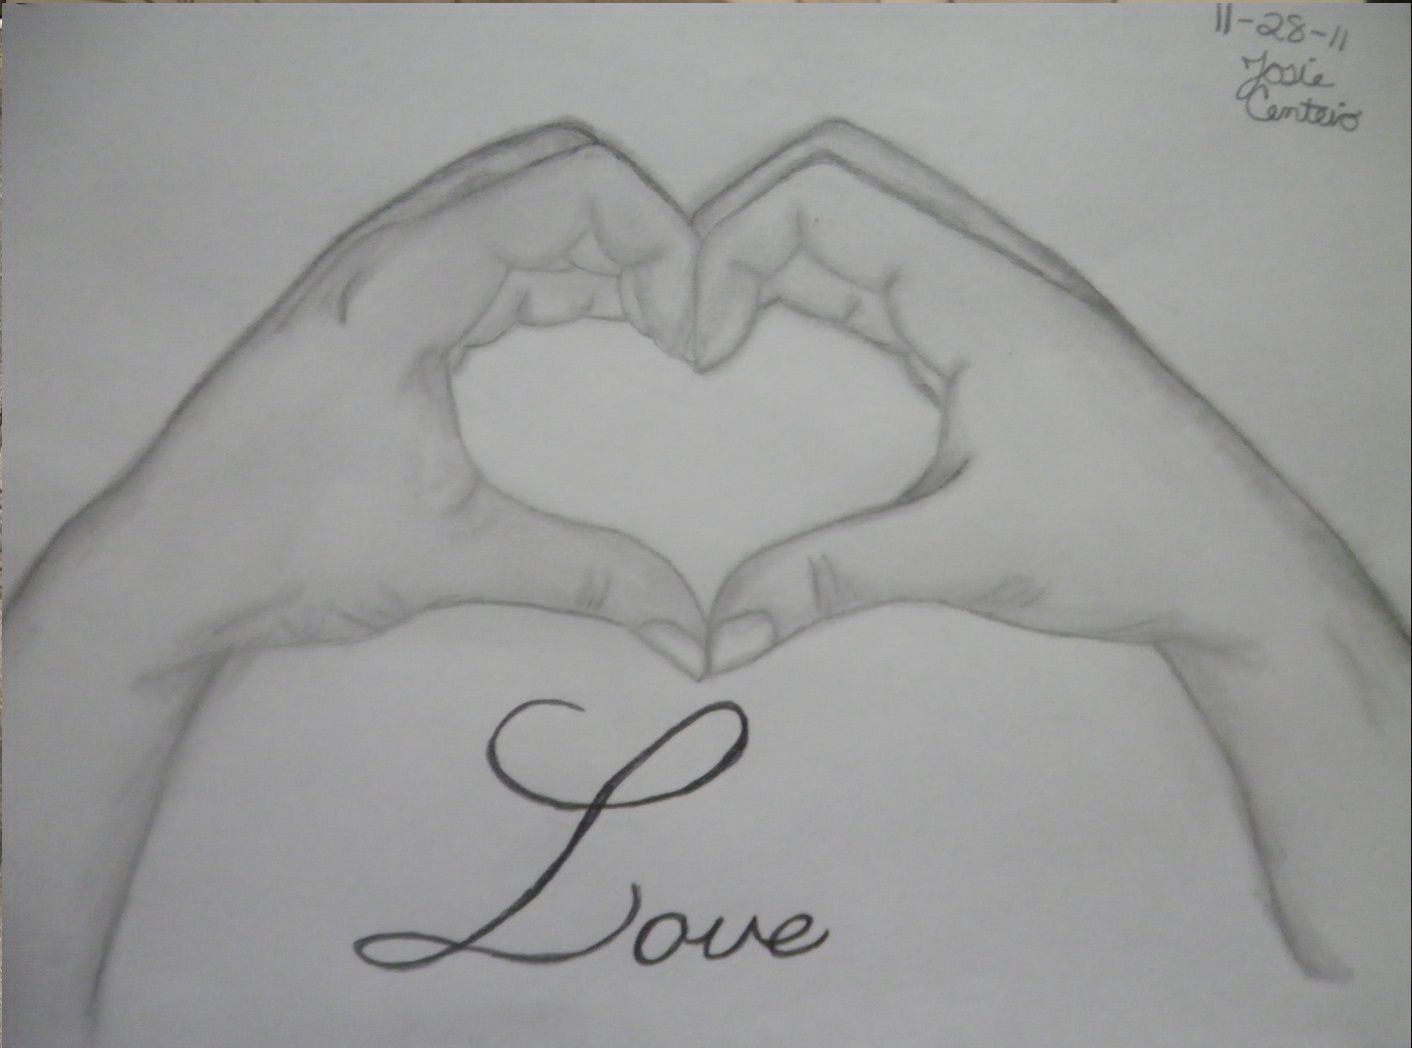 Uncategorized Heart Hands Drawing my next tat idea using me and sons hands tattoos pencil drawings of roses love cuple search results landscaping